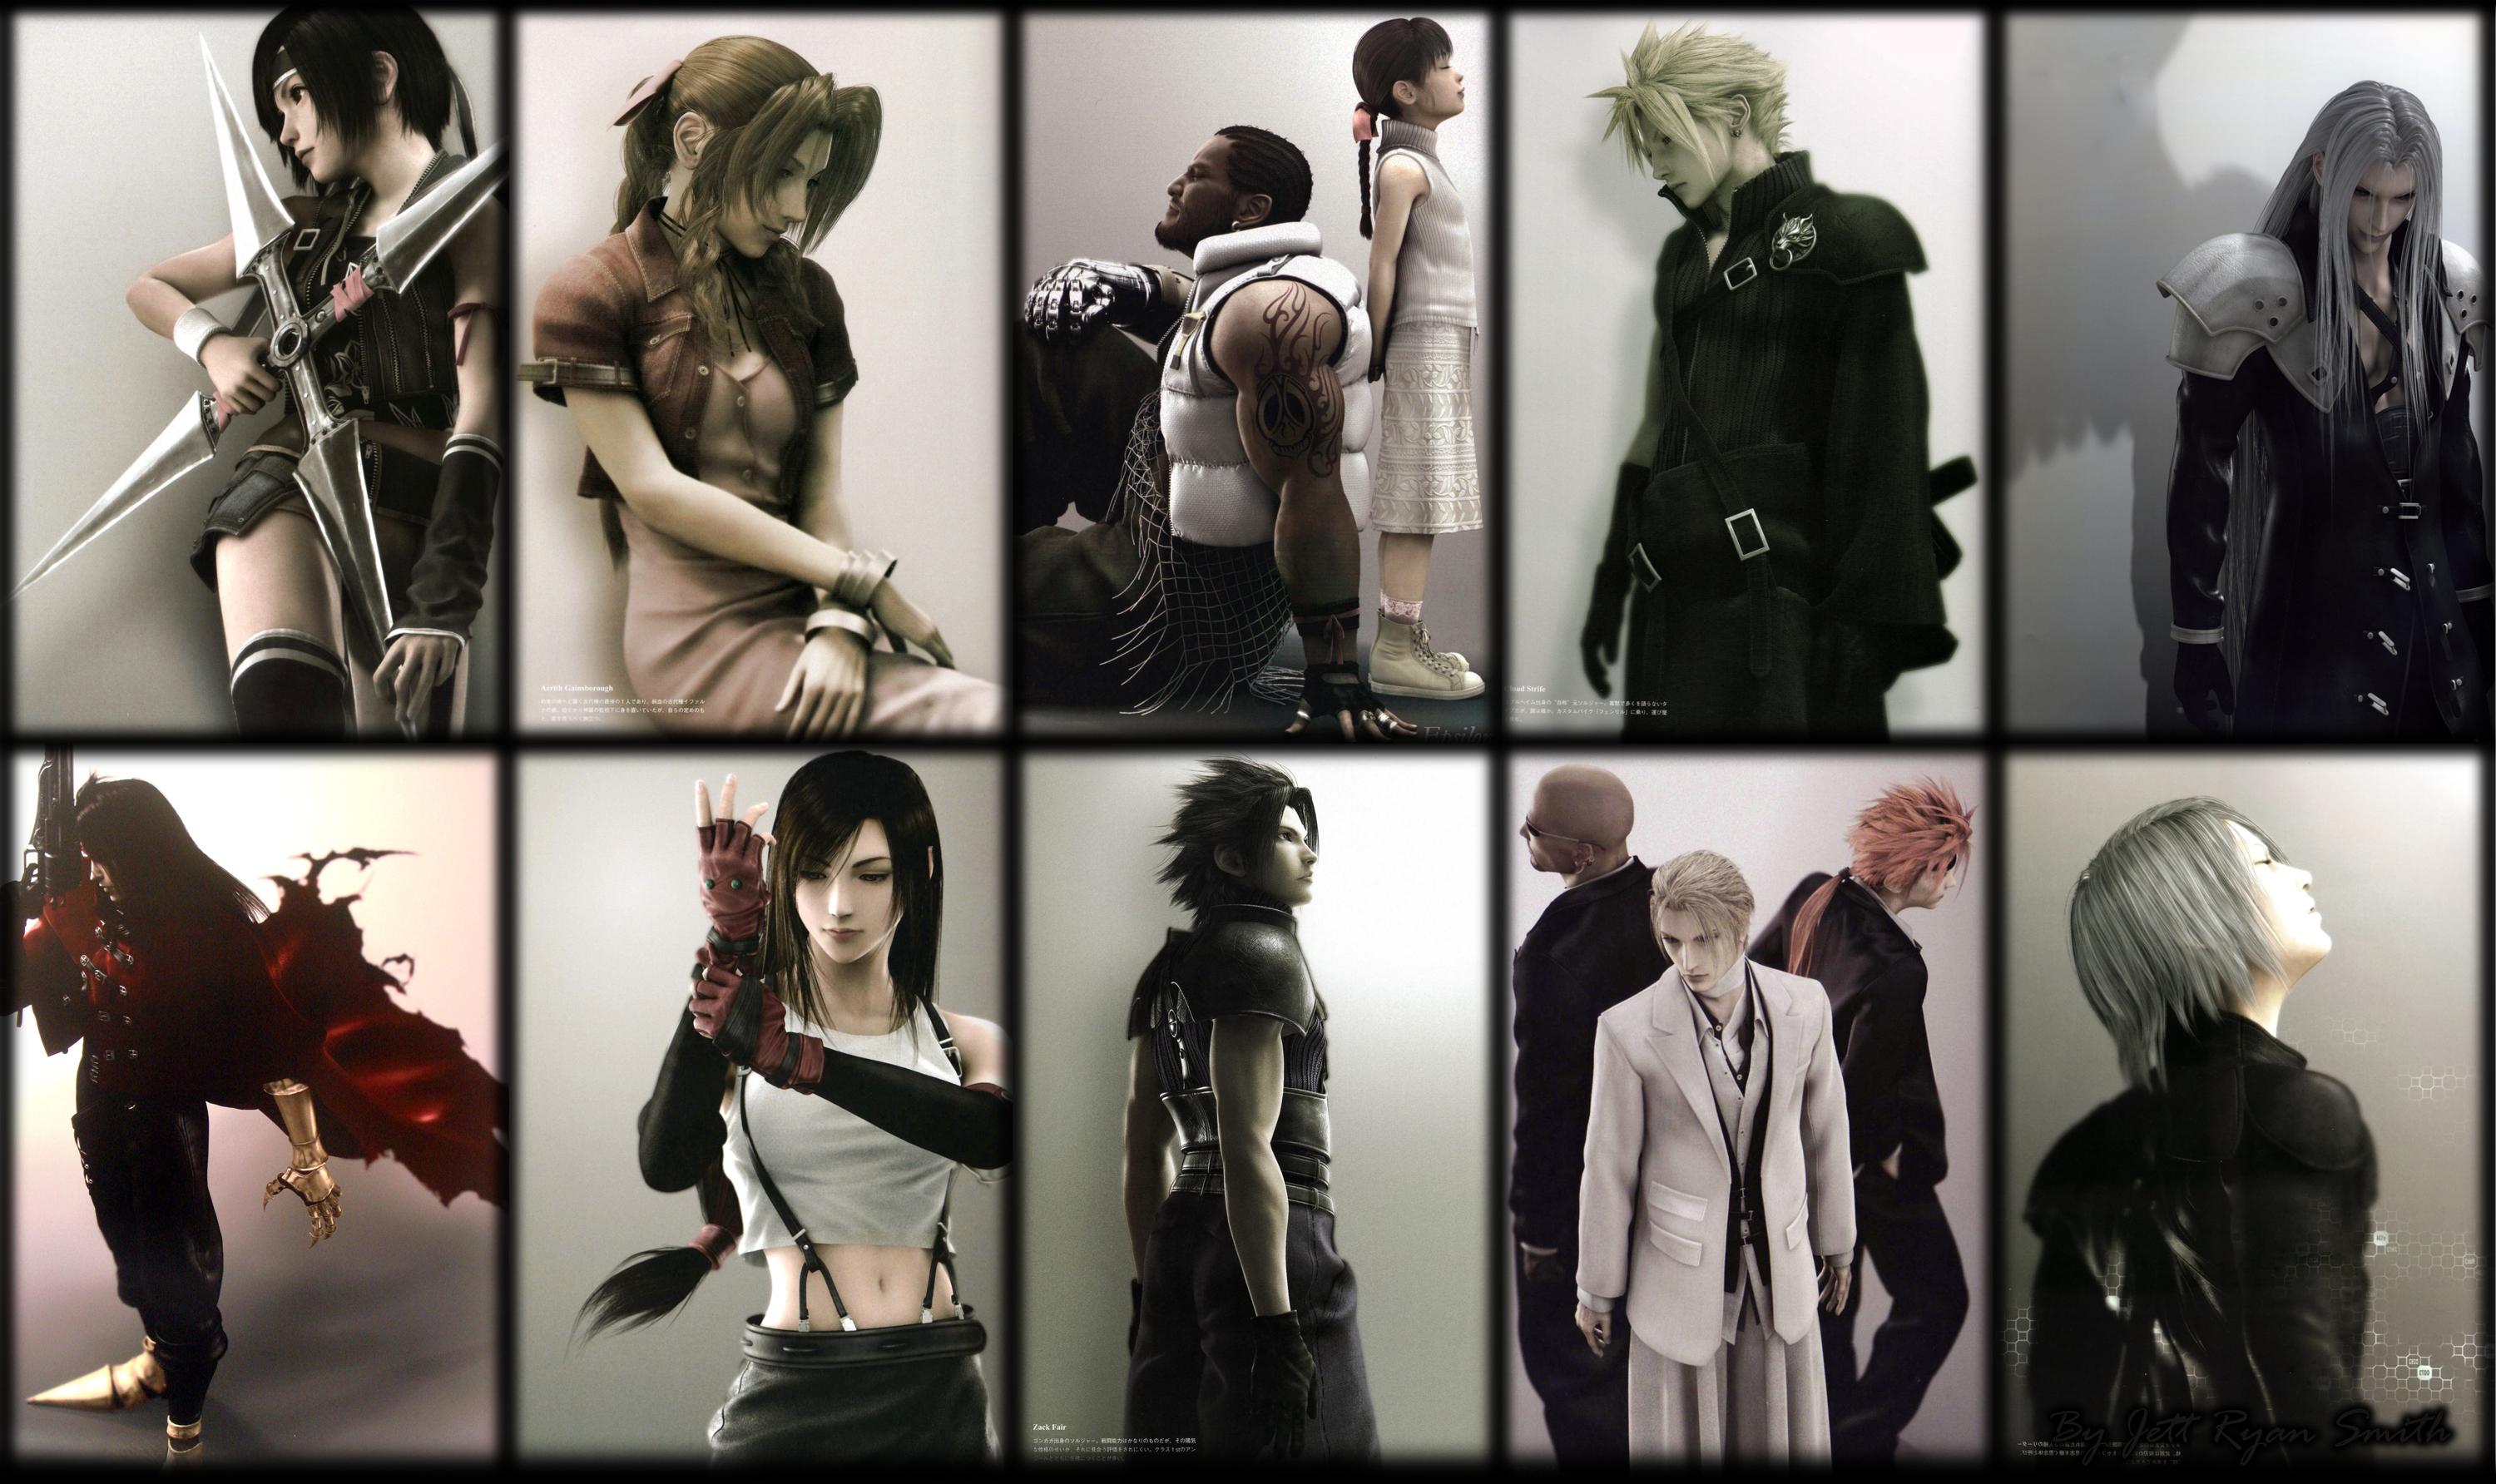 Final fantasy vii wallpaper zerochan anime image board final fantasy vii download final fantasy vii image altavistaventures Gallery